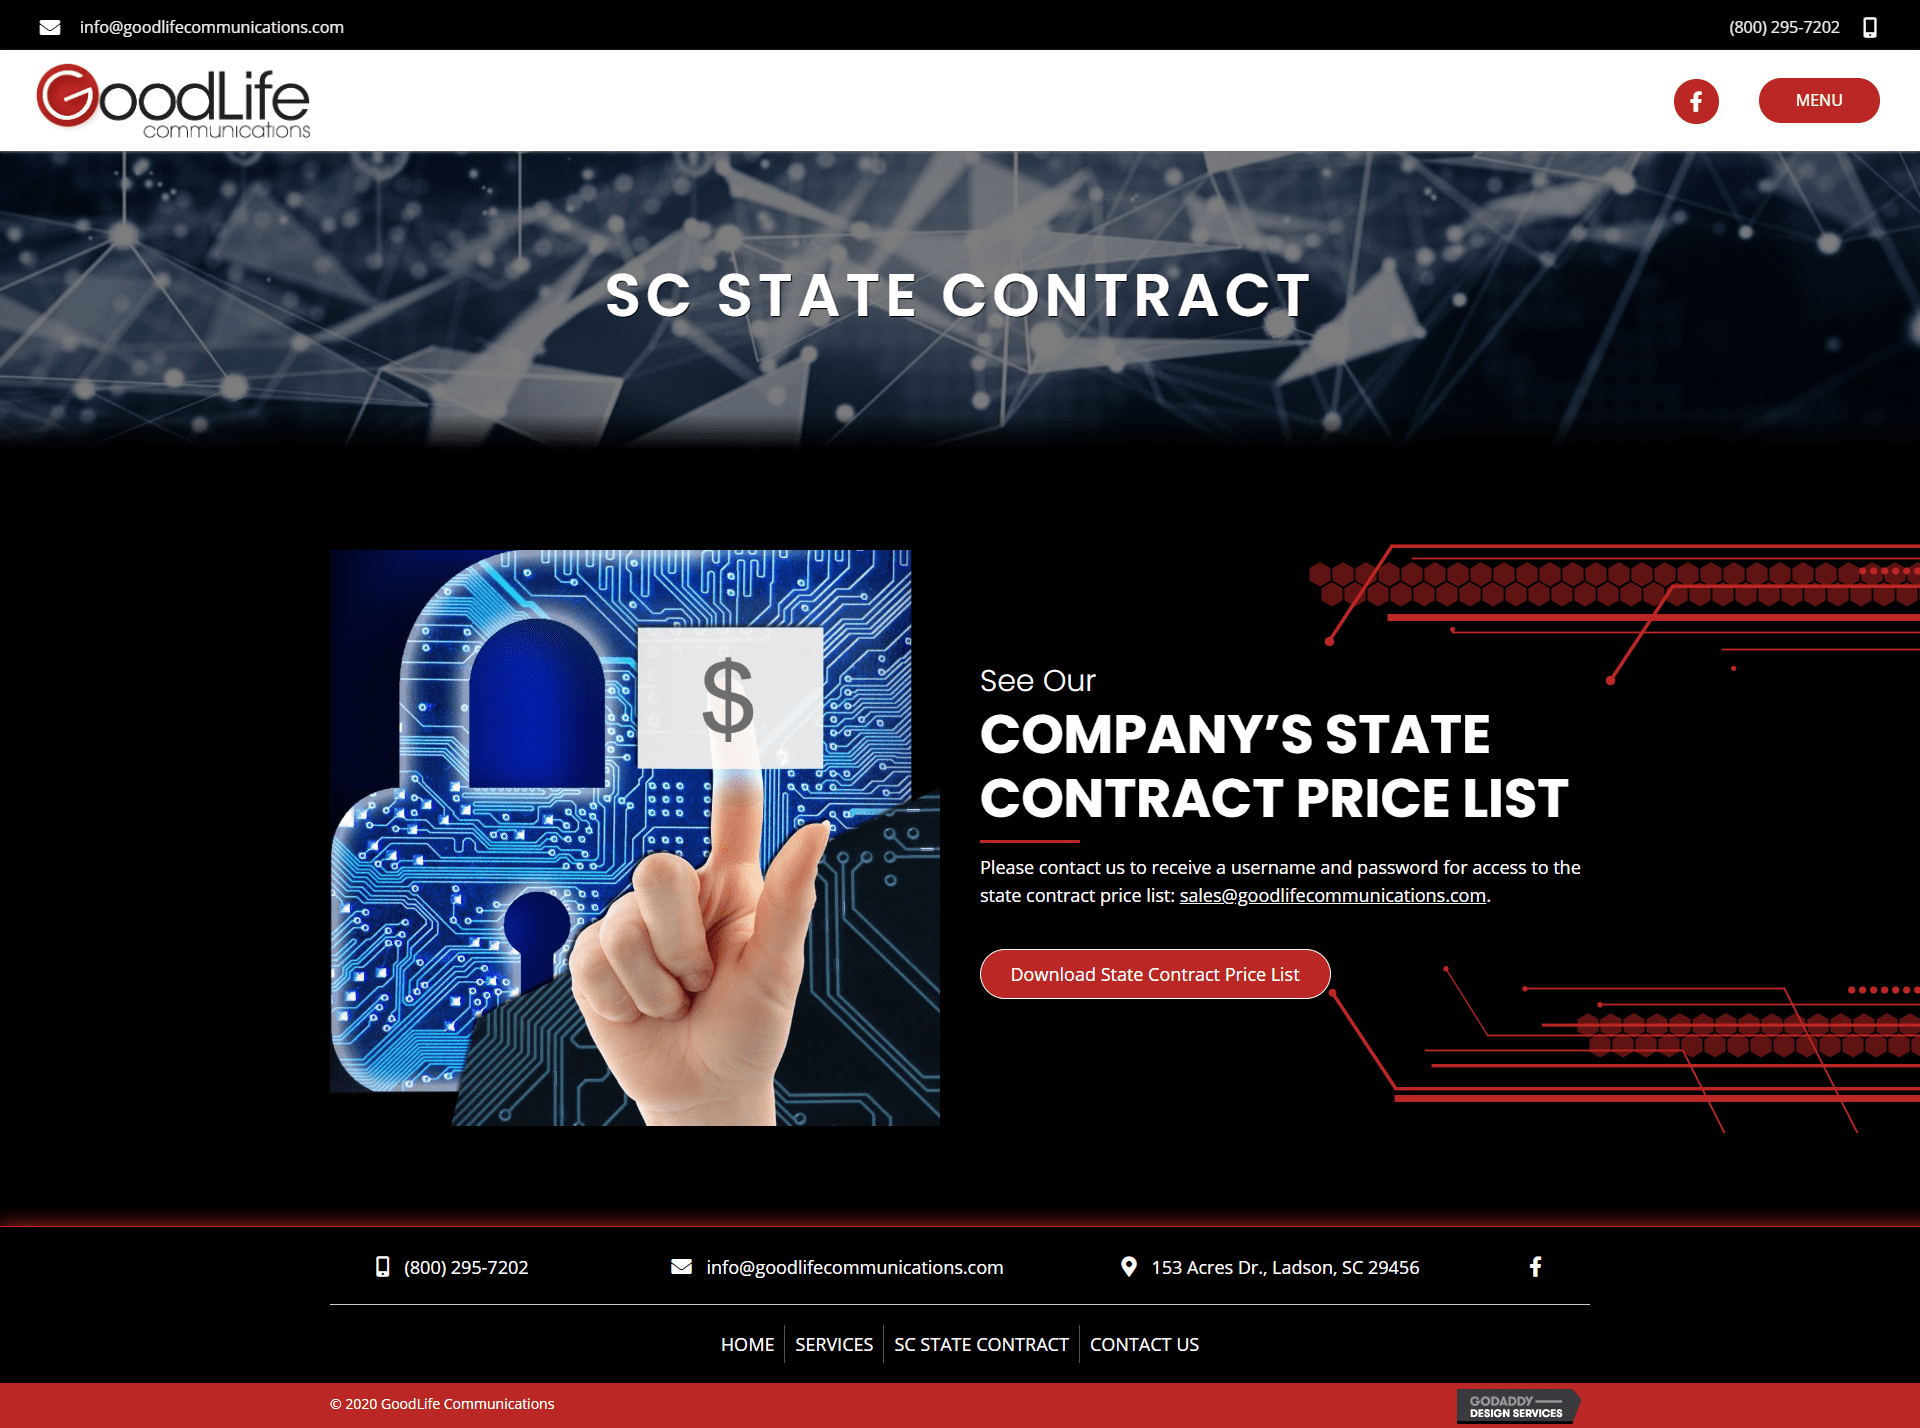 GoodLife Communications Contract Page